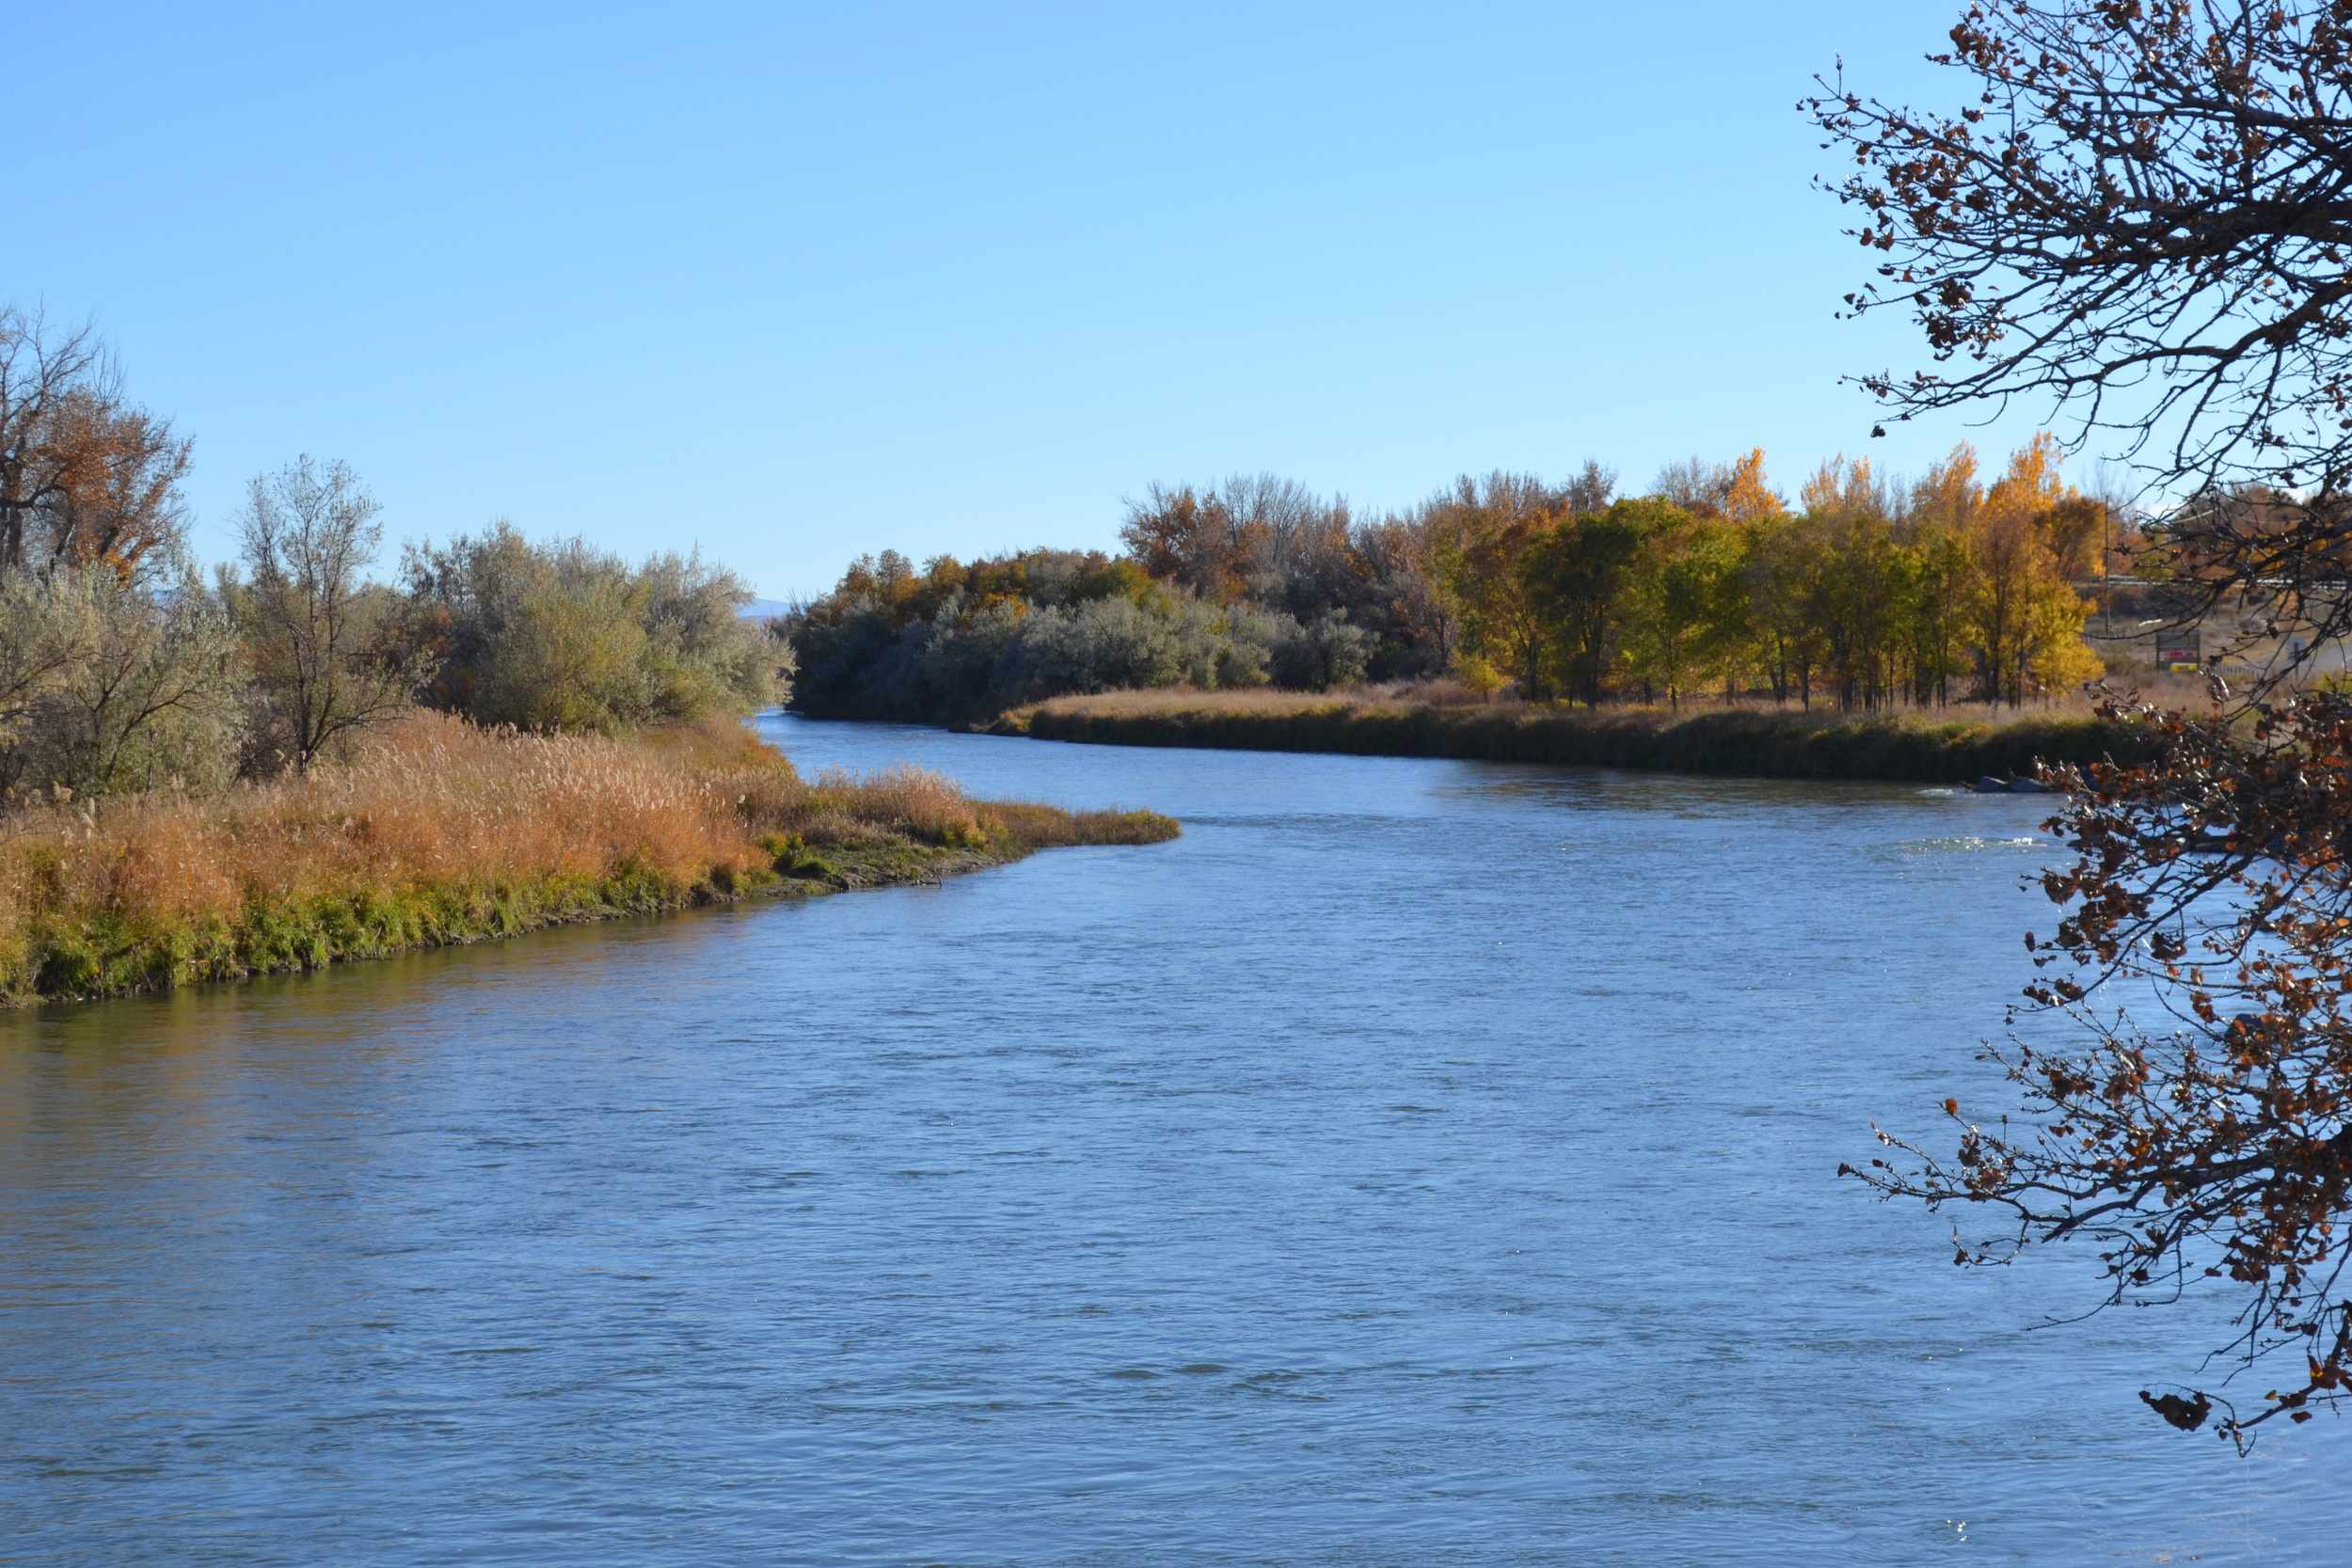 """Article 8, Section 1 of the Wyoming Constitution states that """"The water of all natural streams, springs, lakes or other collections of still water, within the boundaries of the state, are hereby declared to be the property of the state."""""""